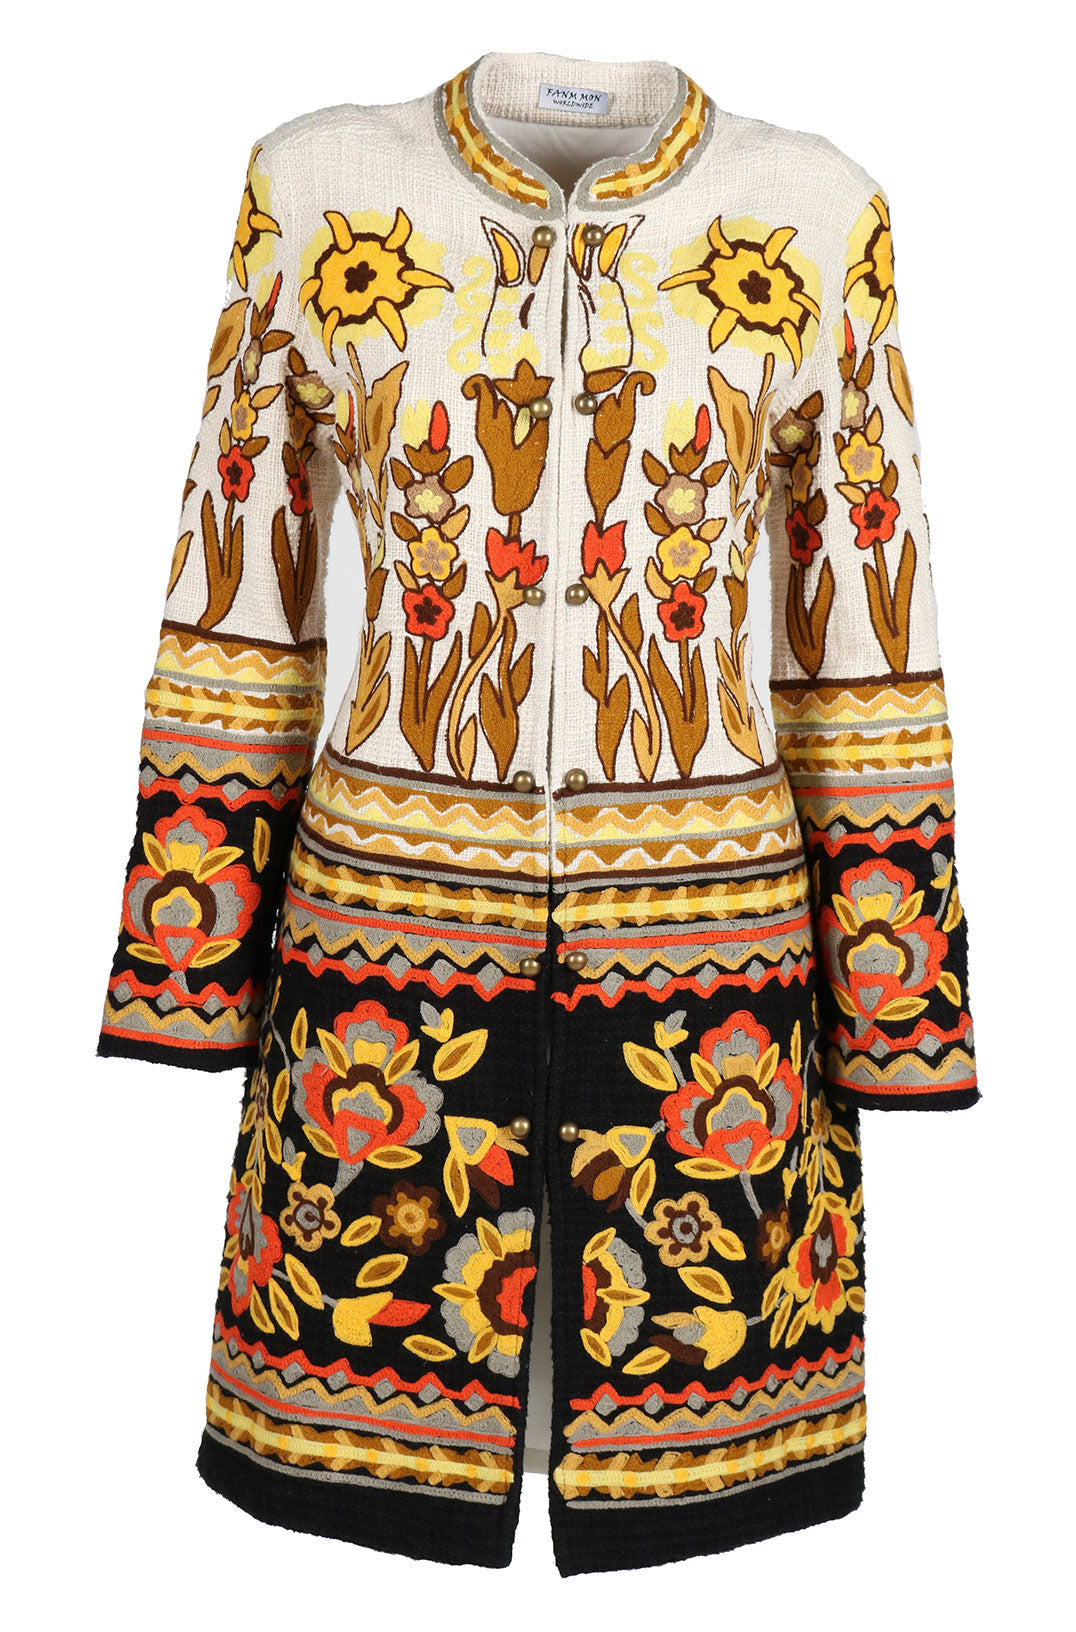 Fanm Mon LESDEUX Vyshyvanka Jacket Dress Embroidered Cream Black Yellow Embroidered Coat